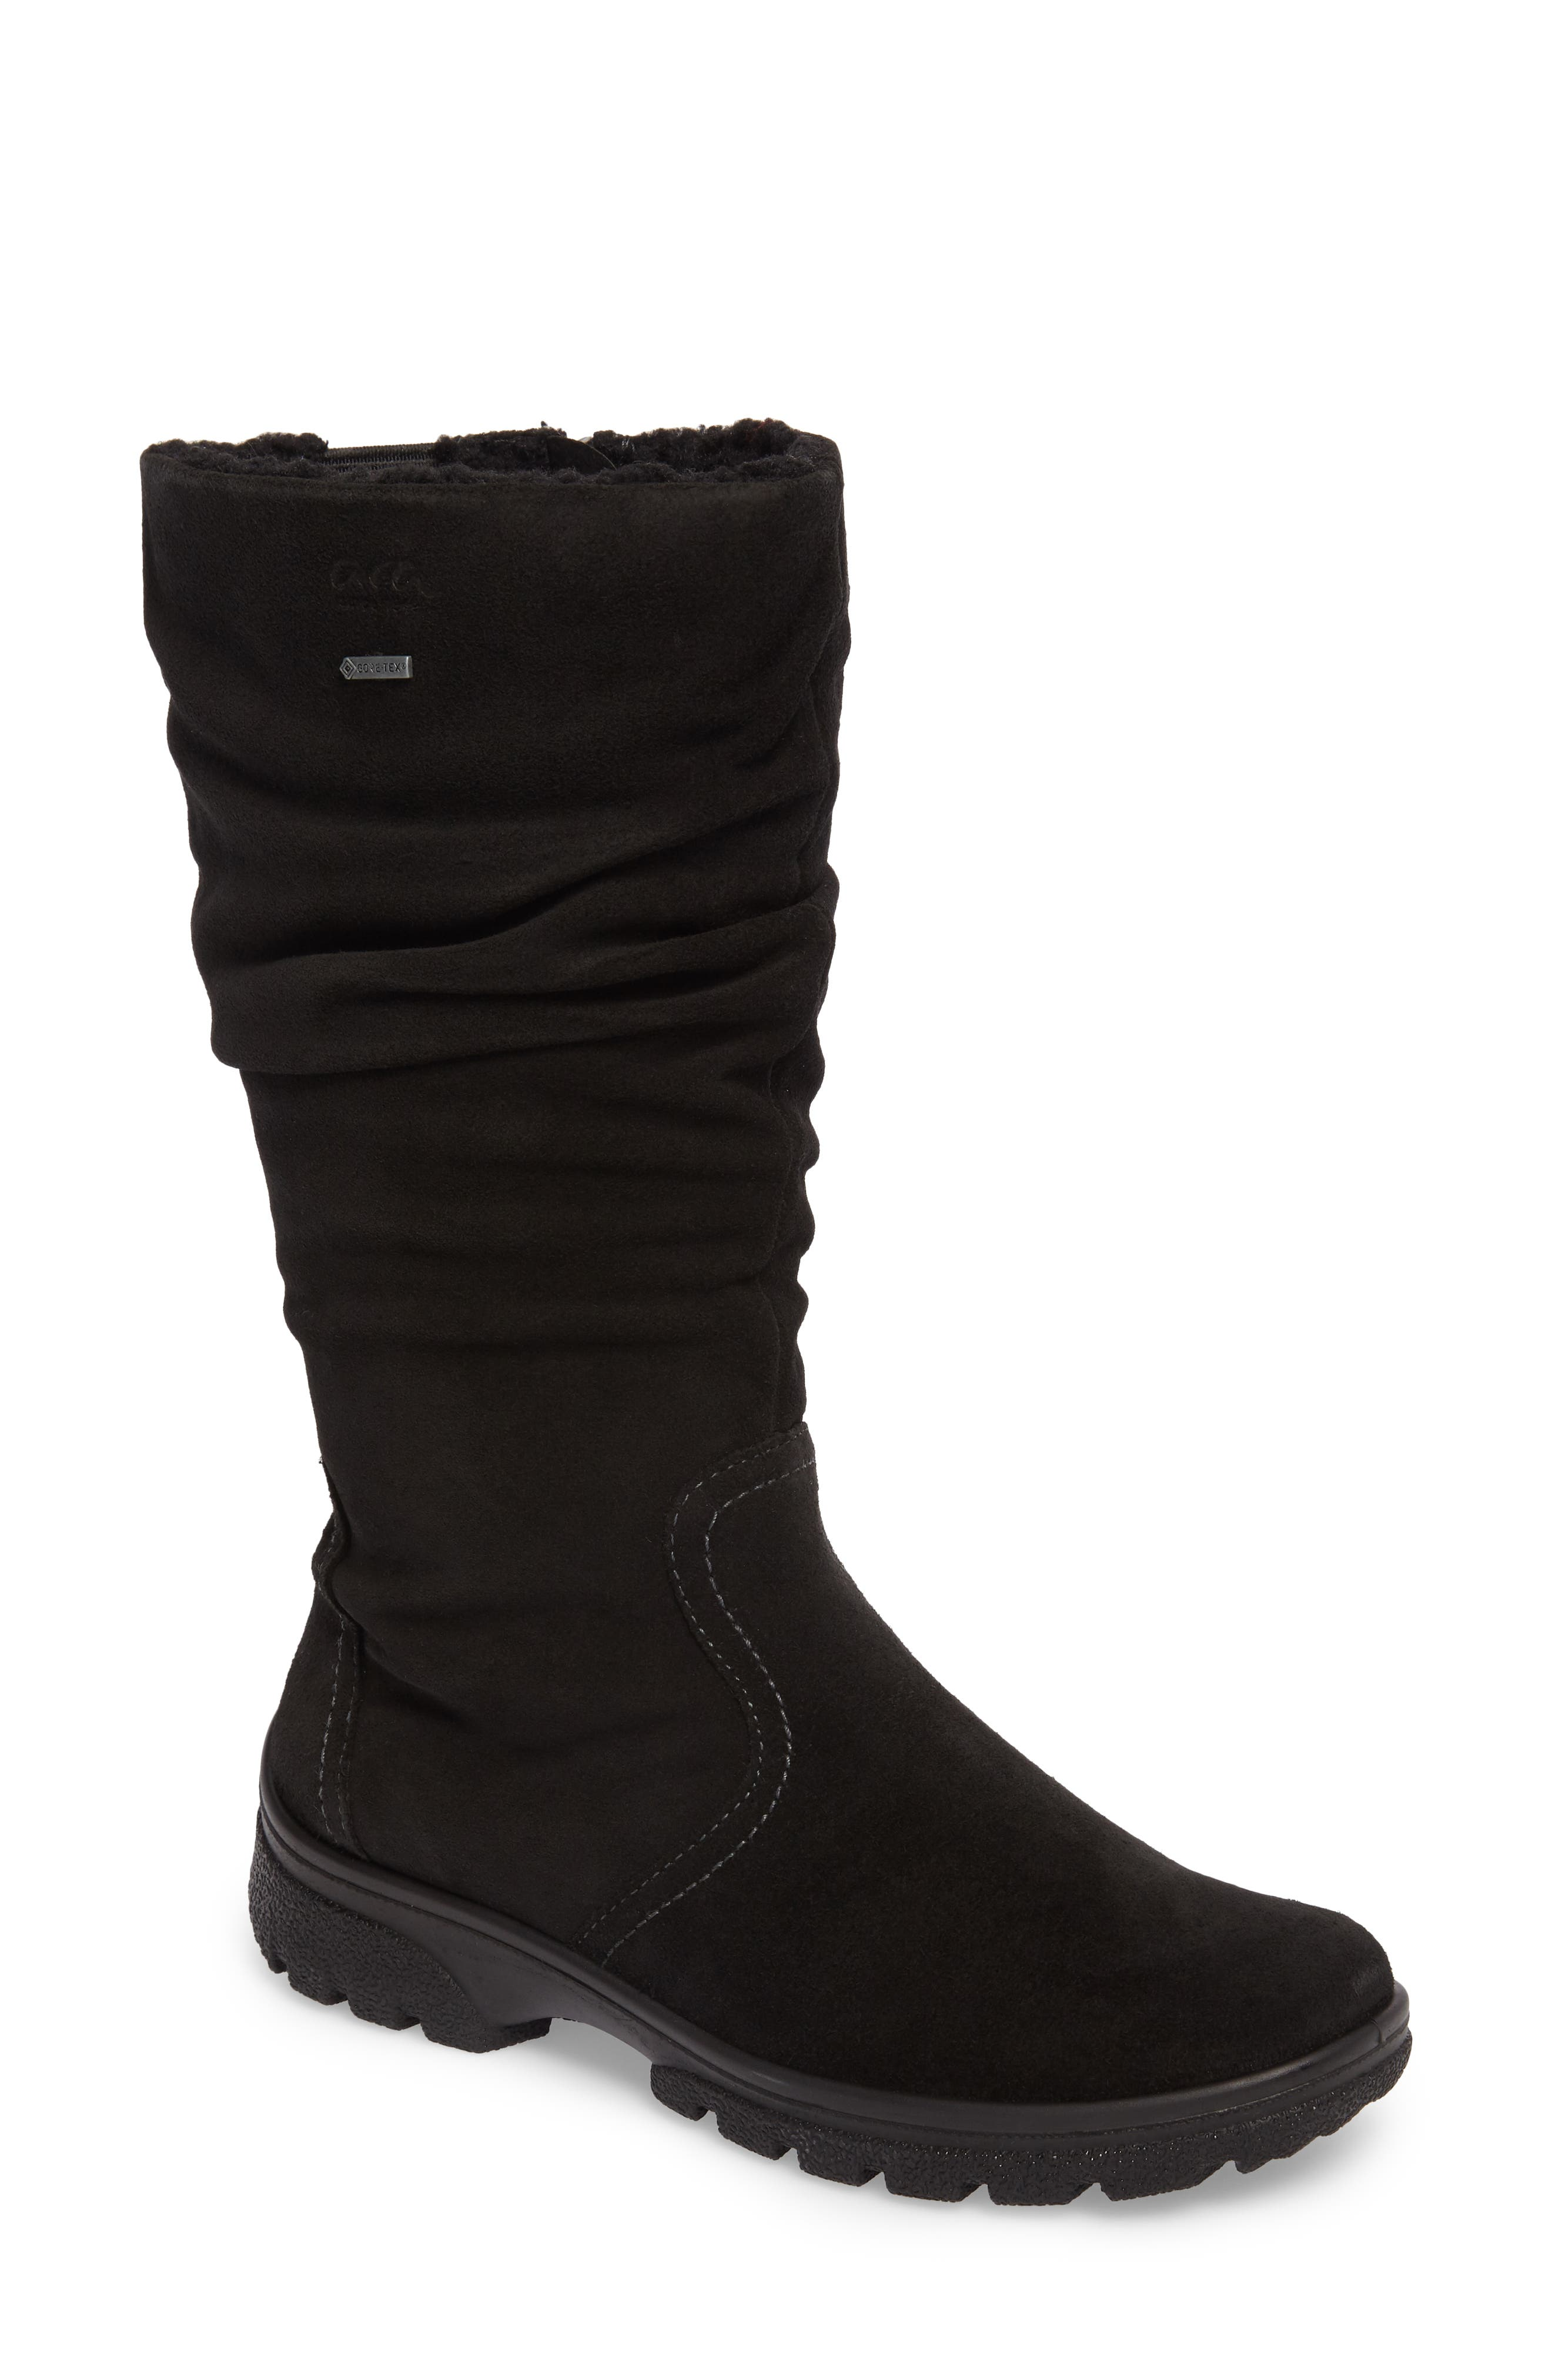 Sydney Waterproof Gore-Tex<sup>®</sup> Boot,                         Main,                         color, 001